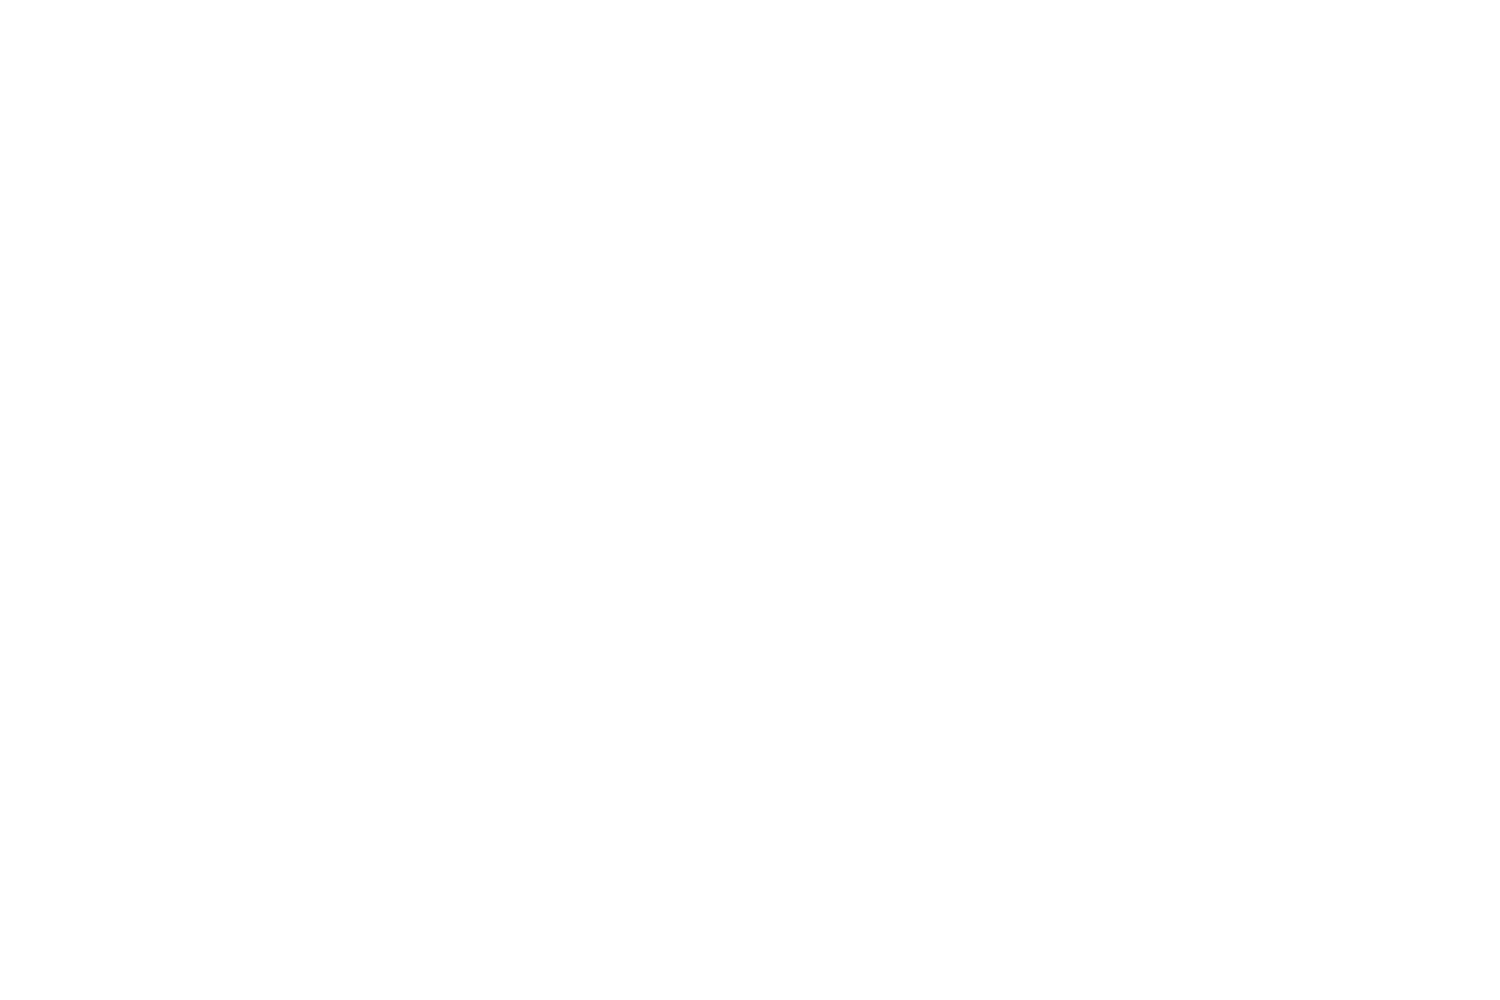 Gold Coast Dog Trainer